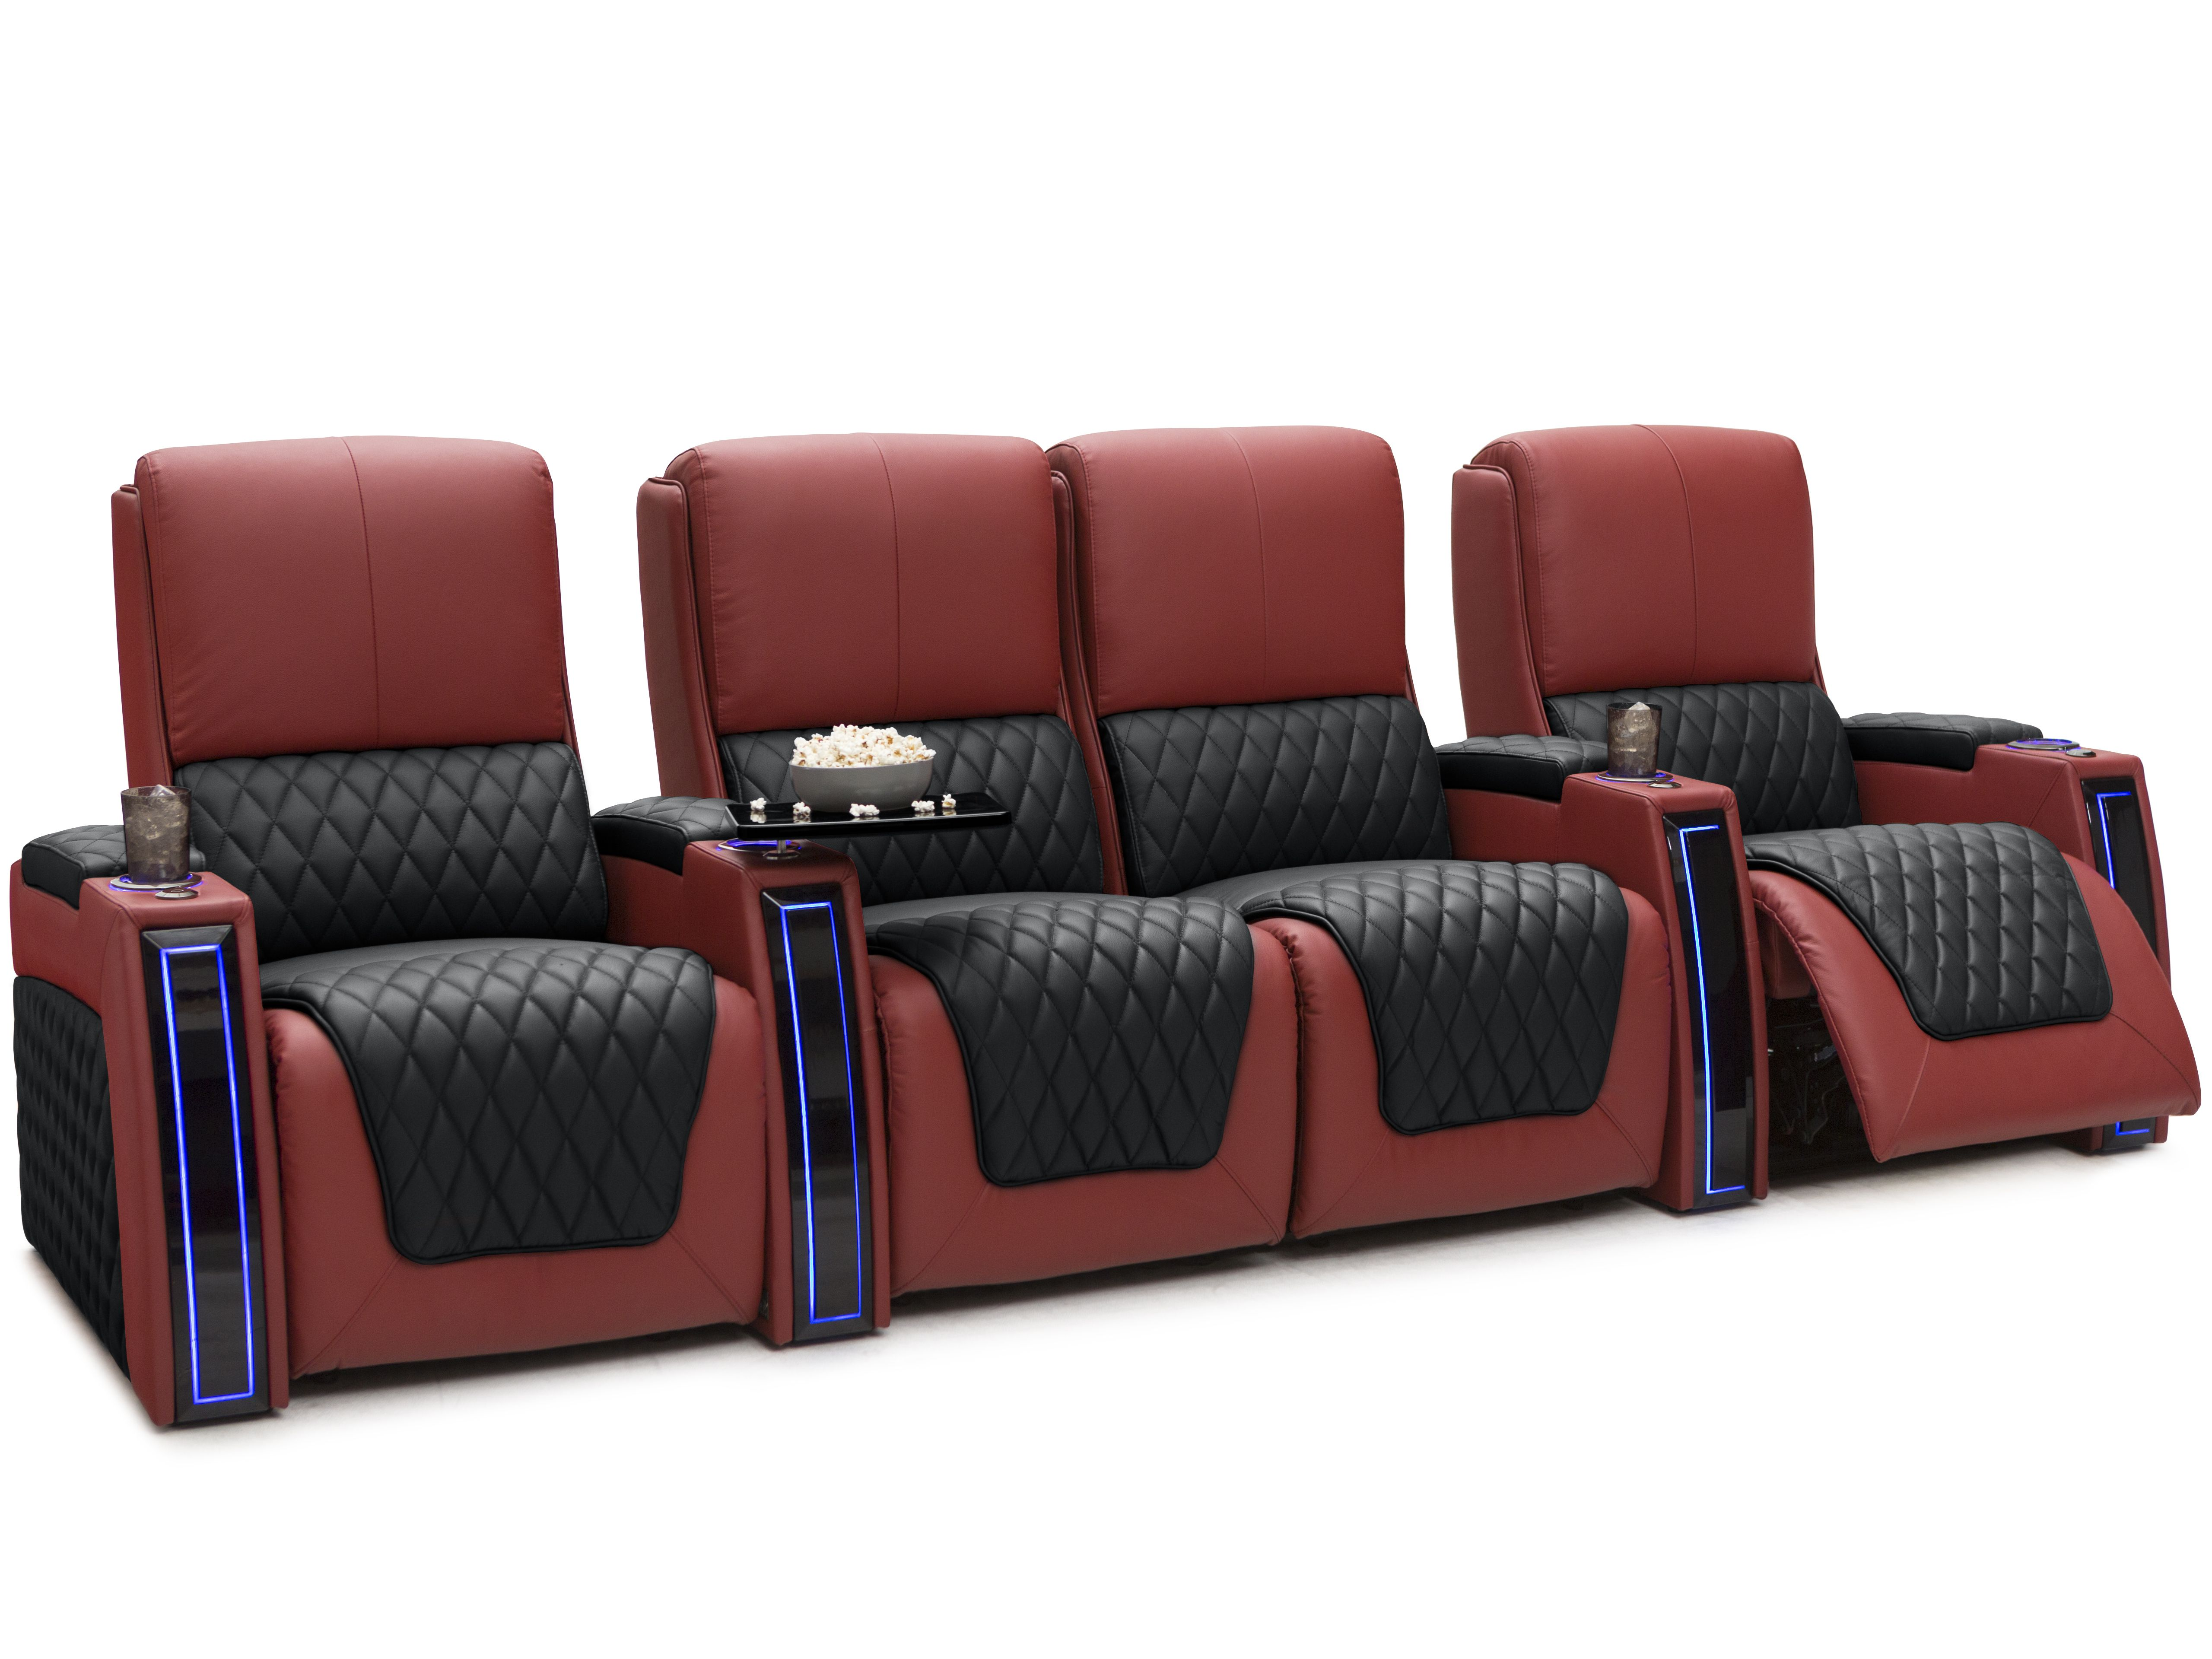 Top Home Theater Seats Of 2018 The Seatcraft Apex Chairs Have Legendary Comfort Features And Price For A Mind Ing Look Most